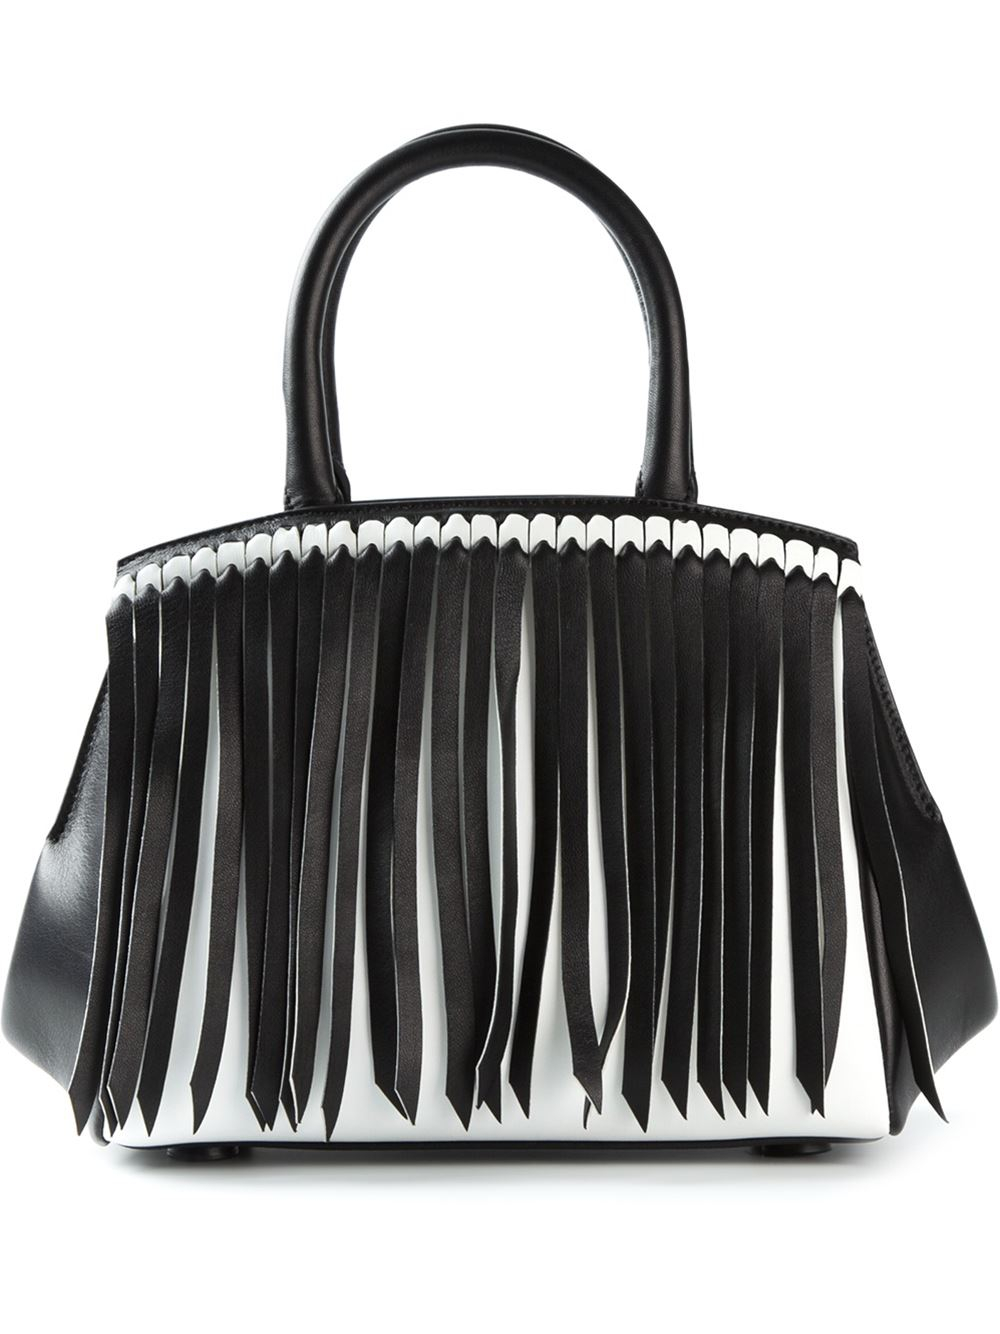 Swing Into With These 10 Fringe Handbags. Start a movement. By Ashley Phillips. Jan 31, Channel Coco vibes with this tweed shoulder bag. Swingy fringe adds a fun element to the bottom, and the black-and-white palette is made more exciting with flashes of blue. These Backpacks Will Make You Forget the Tote Bag Women's Work Bags.